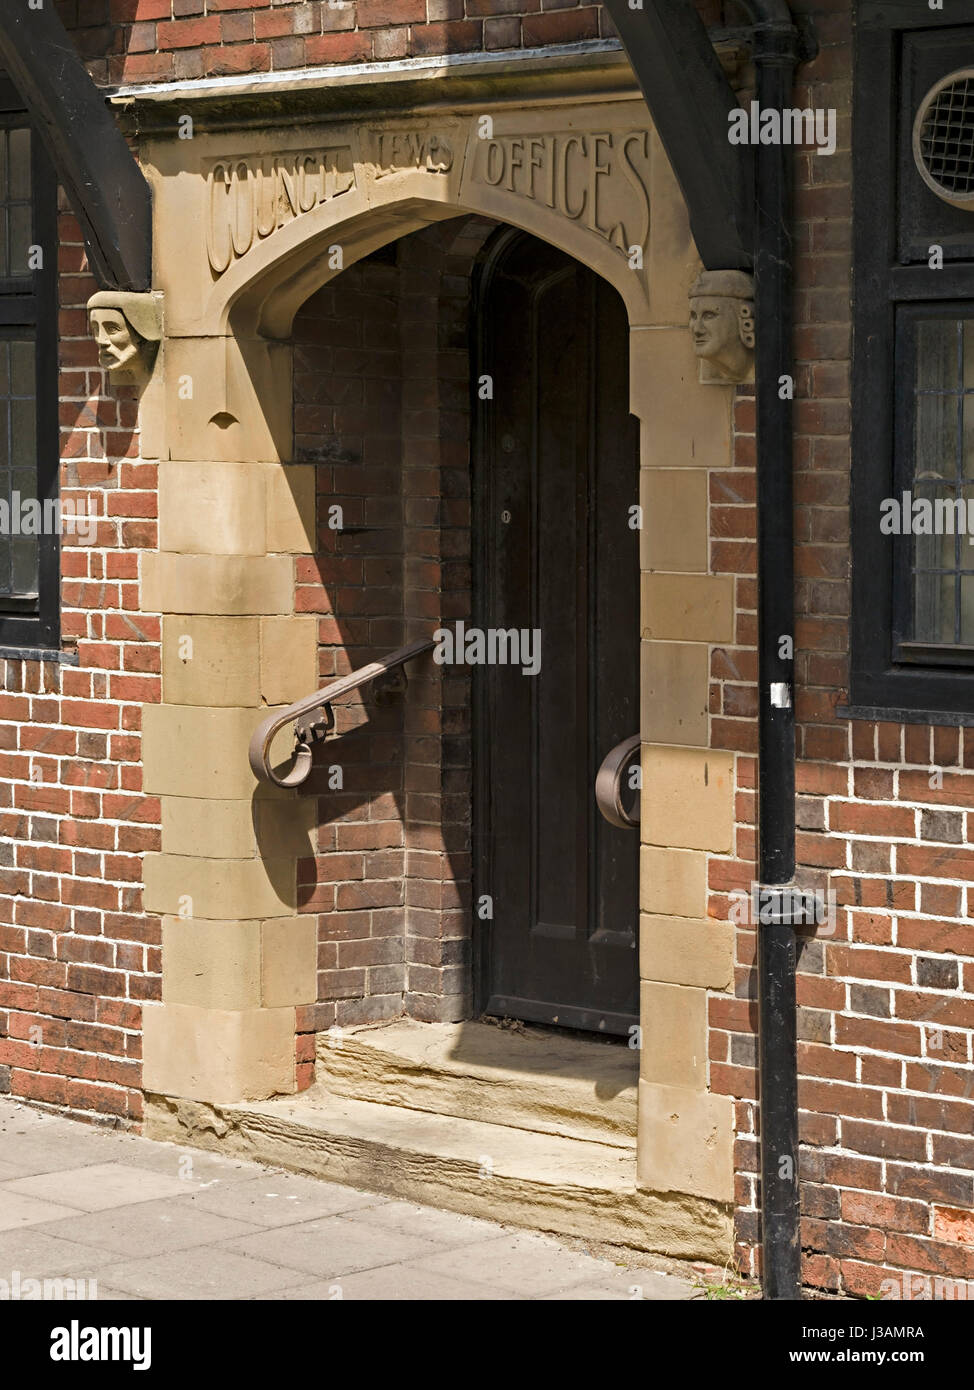 Entrance doorway, Old council offices, Fisher Street, Lewes, East Sussex, England, UK - Stock Image